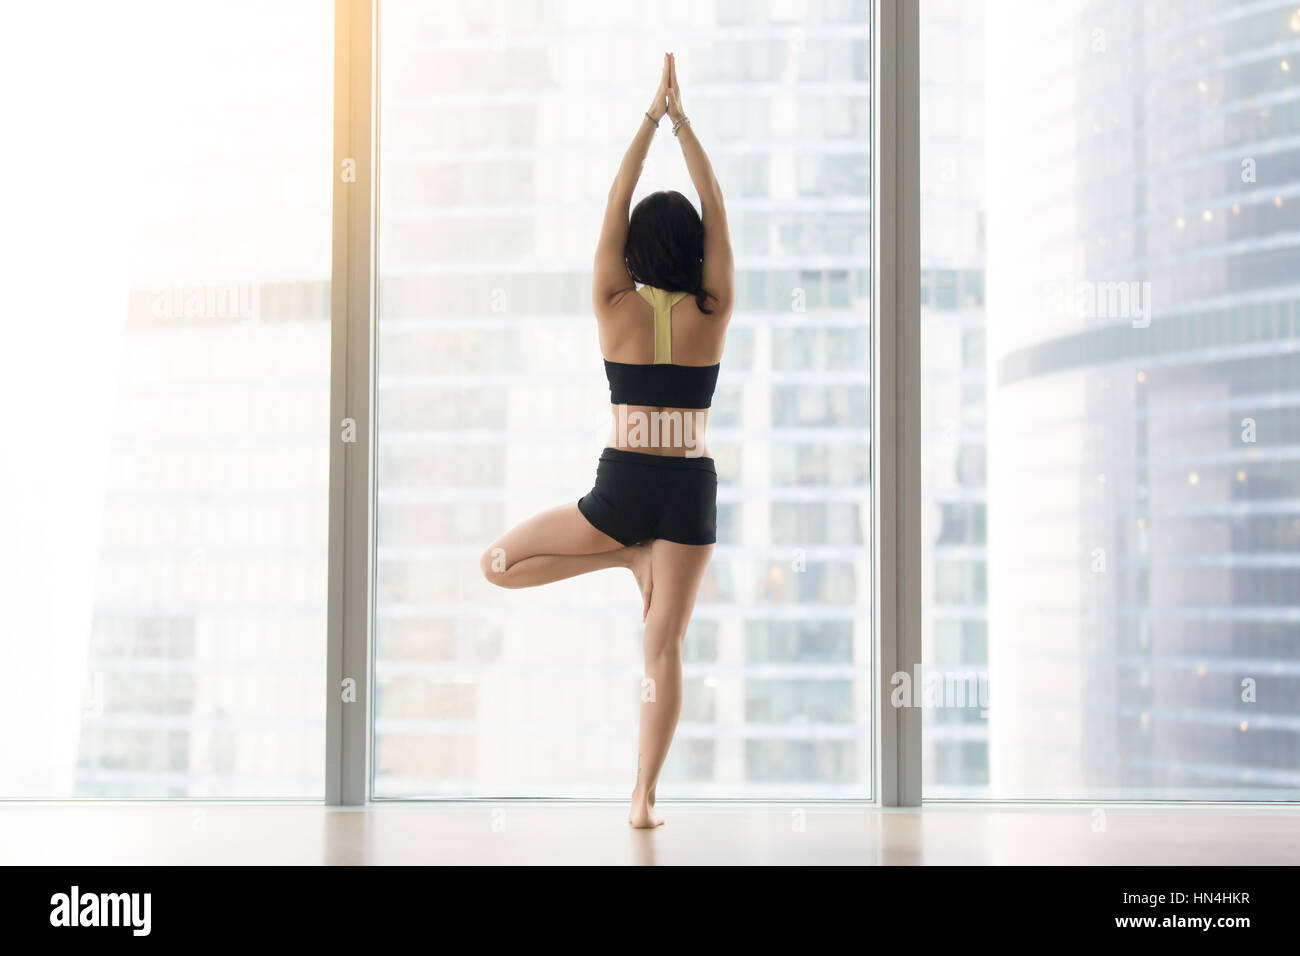 Young woman in Vrksasana pose against floor window, rear view Stock Photo